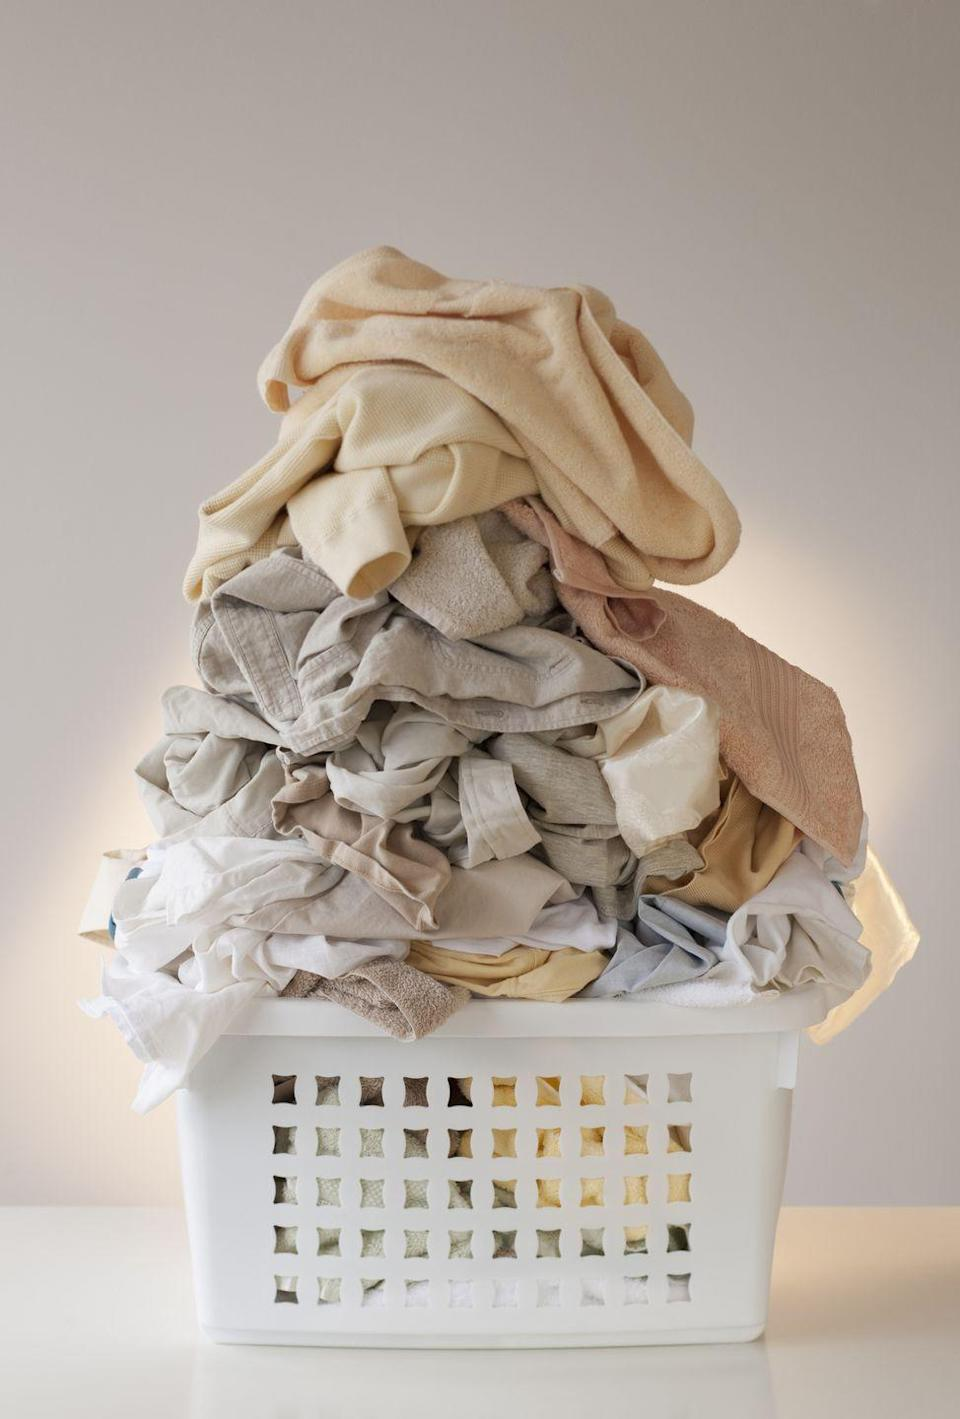 """<p>While washing your towels after every three uses and giving them a <a href=""""https://www.countryliving.com/life/a43684/how-often-you-should-wash-your-towels/"""" rel=""""nofollow noopener"""" target=""""_blank"""" data-ylk=""""slk:vinegar treatment"""" class=""""link rapid-noclick-resp"""">vinegar treatment</a> will typically keep 'em fresh, if they're discolored, it's time to pony up for <a href=""""https://www.bedbathandbeyond.com/store/category/bath/bath-towels-rugs/bath-towels/13434/"""" rel=""""nofollow noopener"""" target=""""_blank"""" data-ylk=""""slk:new ones"""" class=""""link rapid-noclick-resp"""">new ones</a>.</p>"""